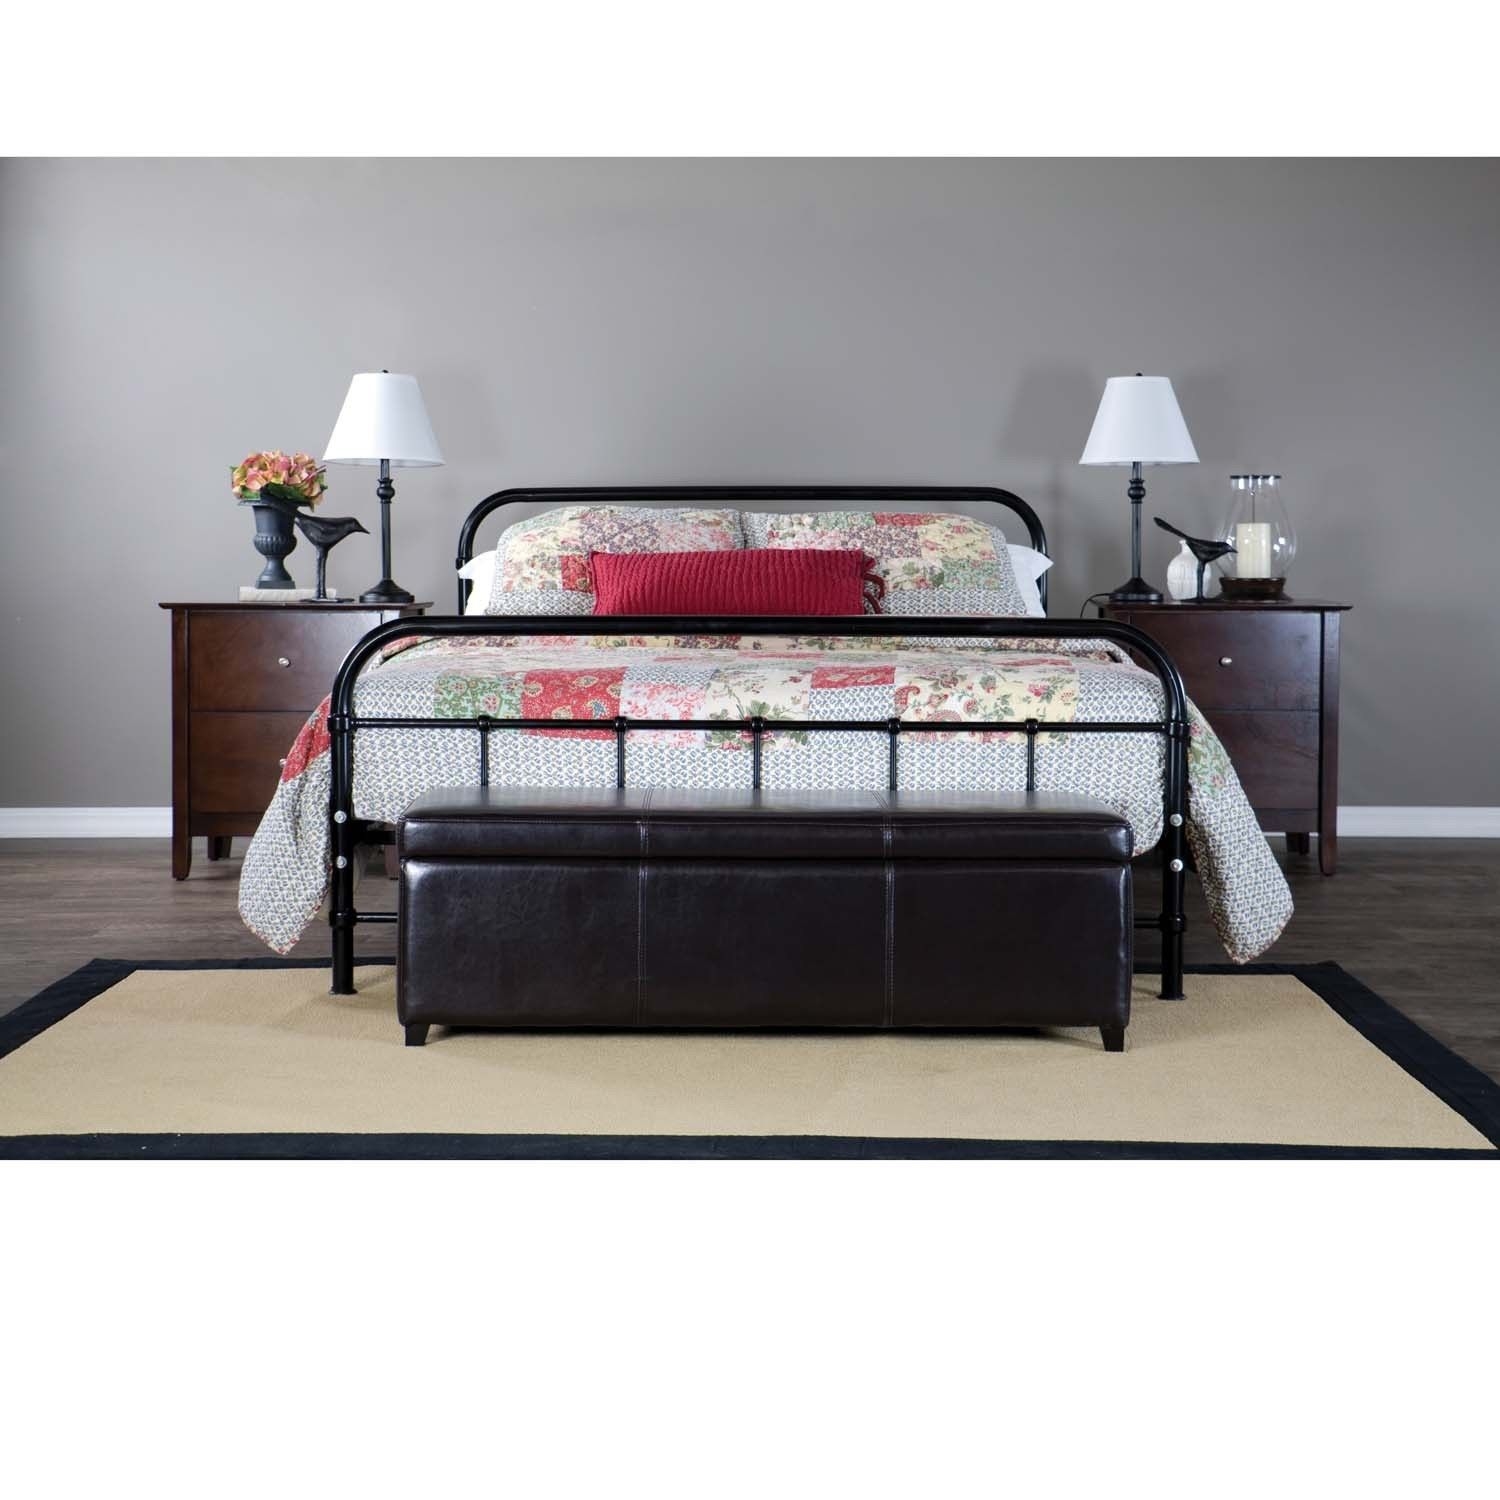 Baxton Studio Timolin Antique Iron Metal Black Queen Bed -